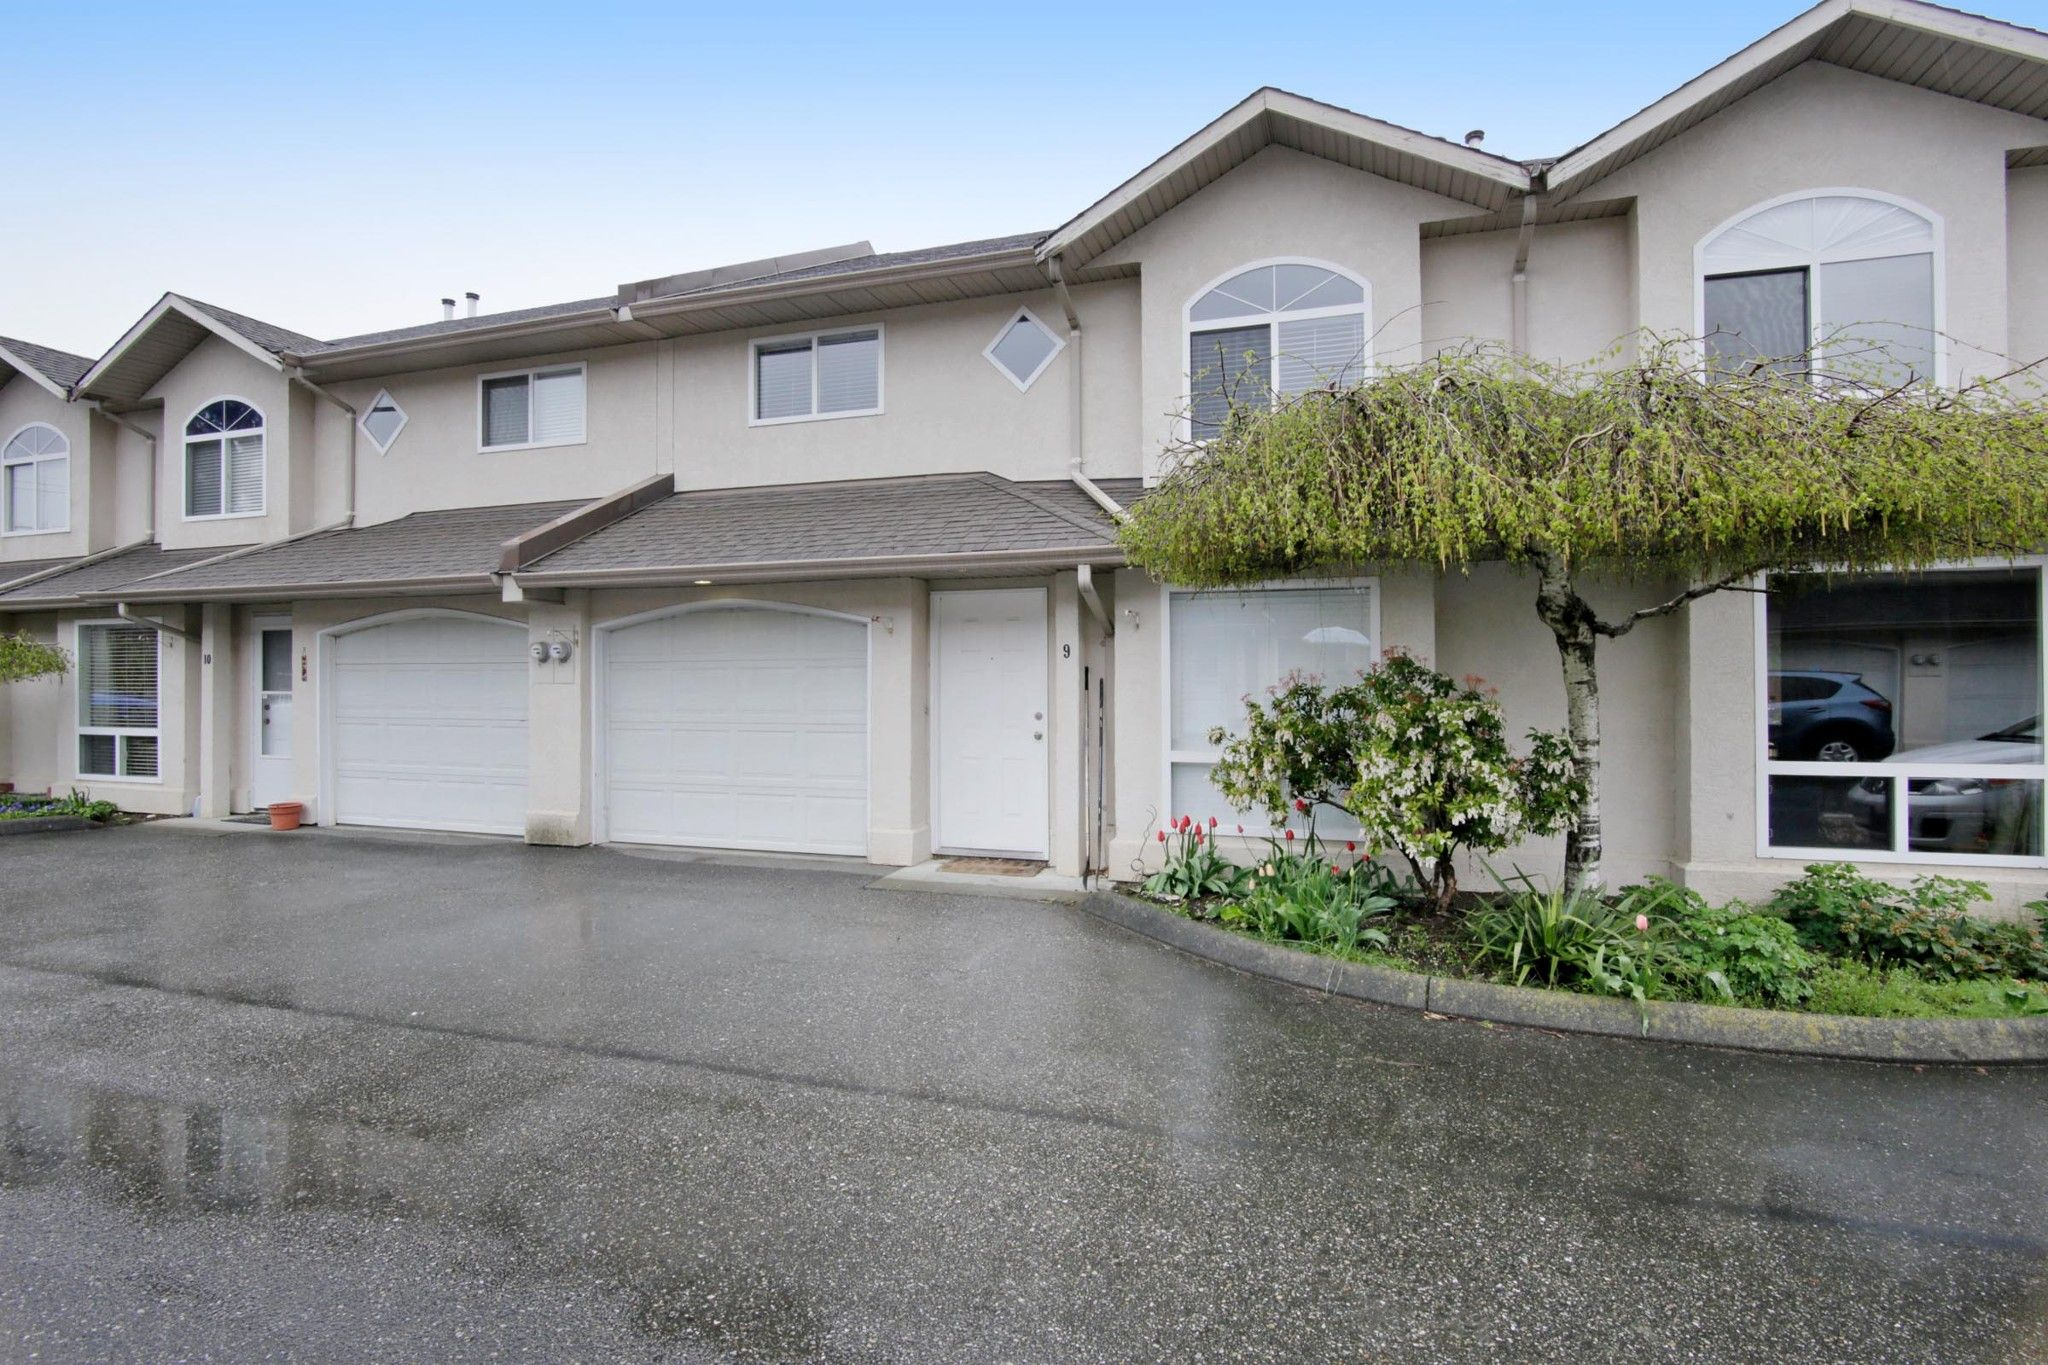 """Main Photo: 9 9486 WOODBINE Street in Chilliwack: Chilliwack E Young-Yale Townhouse for sale in """"Villa Rosa"""" : MLS®# R2257582"""